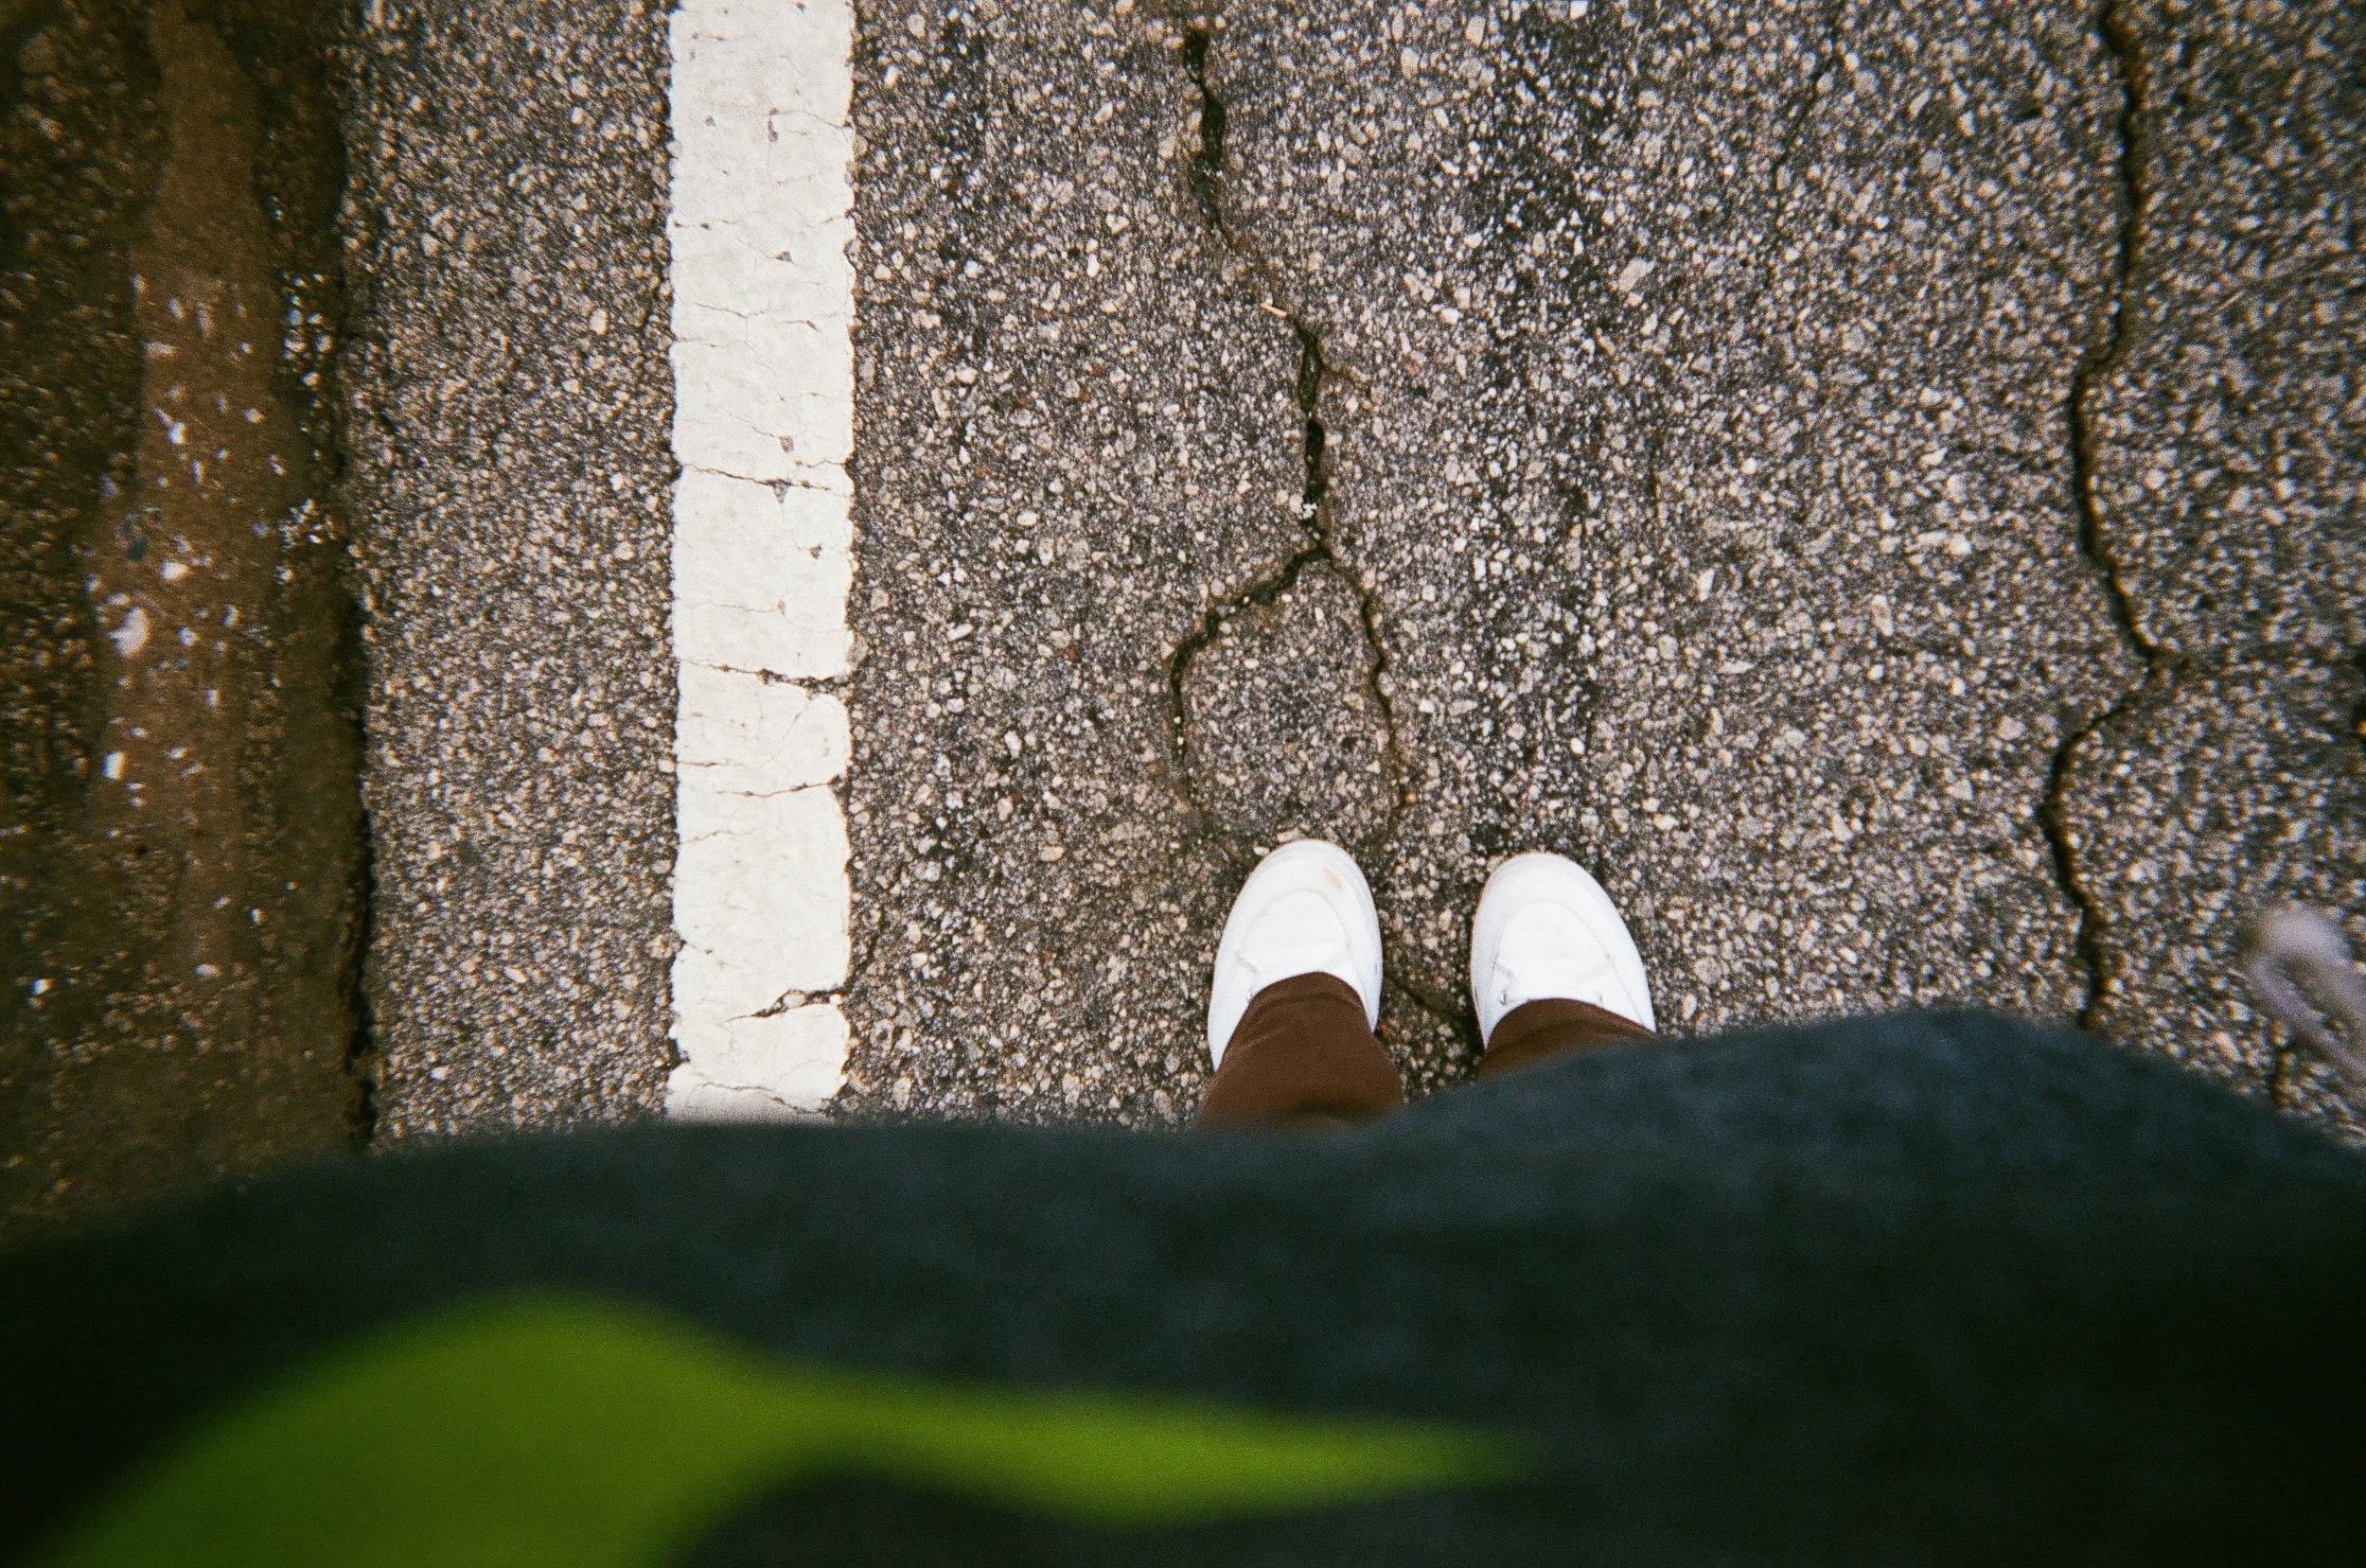 A Walk in Our Shoes by Tonya Lee